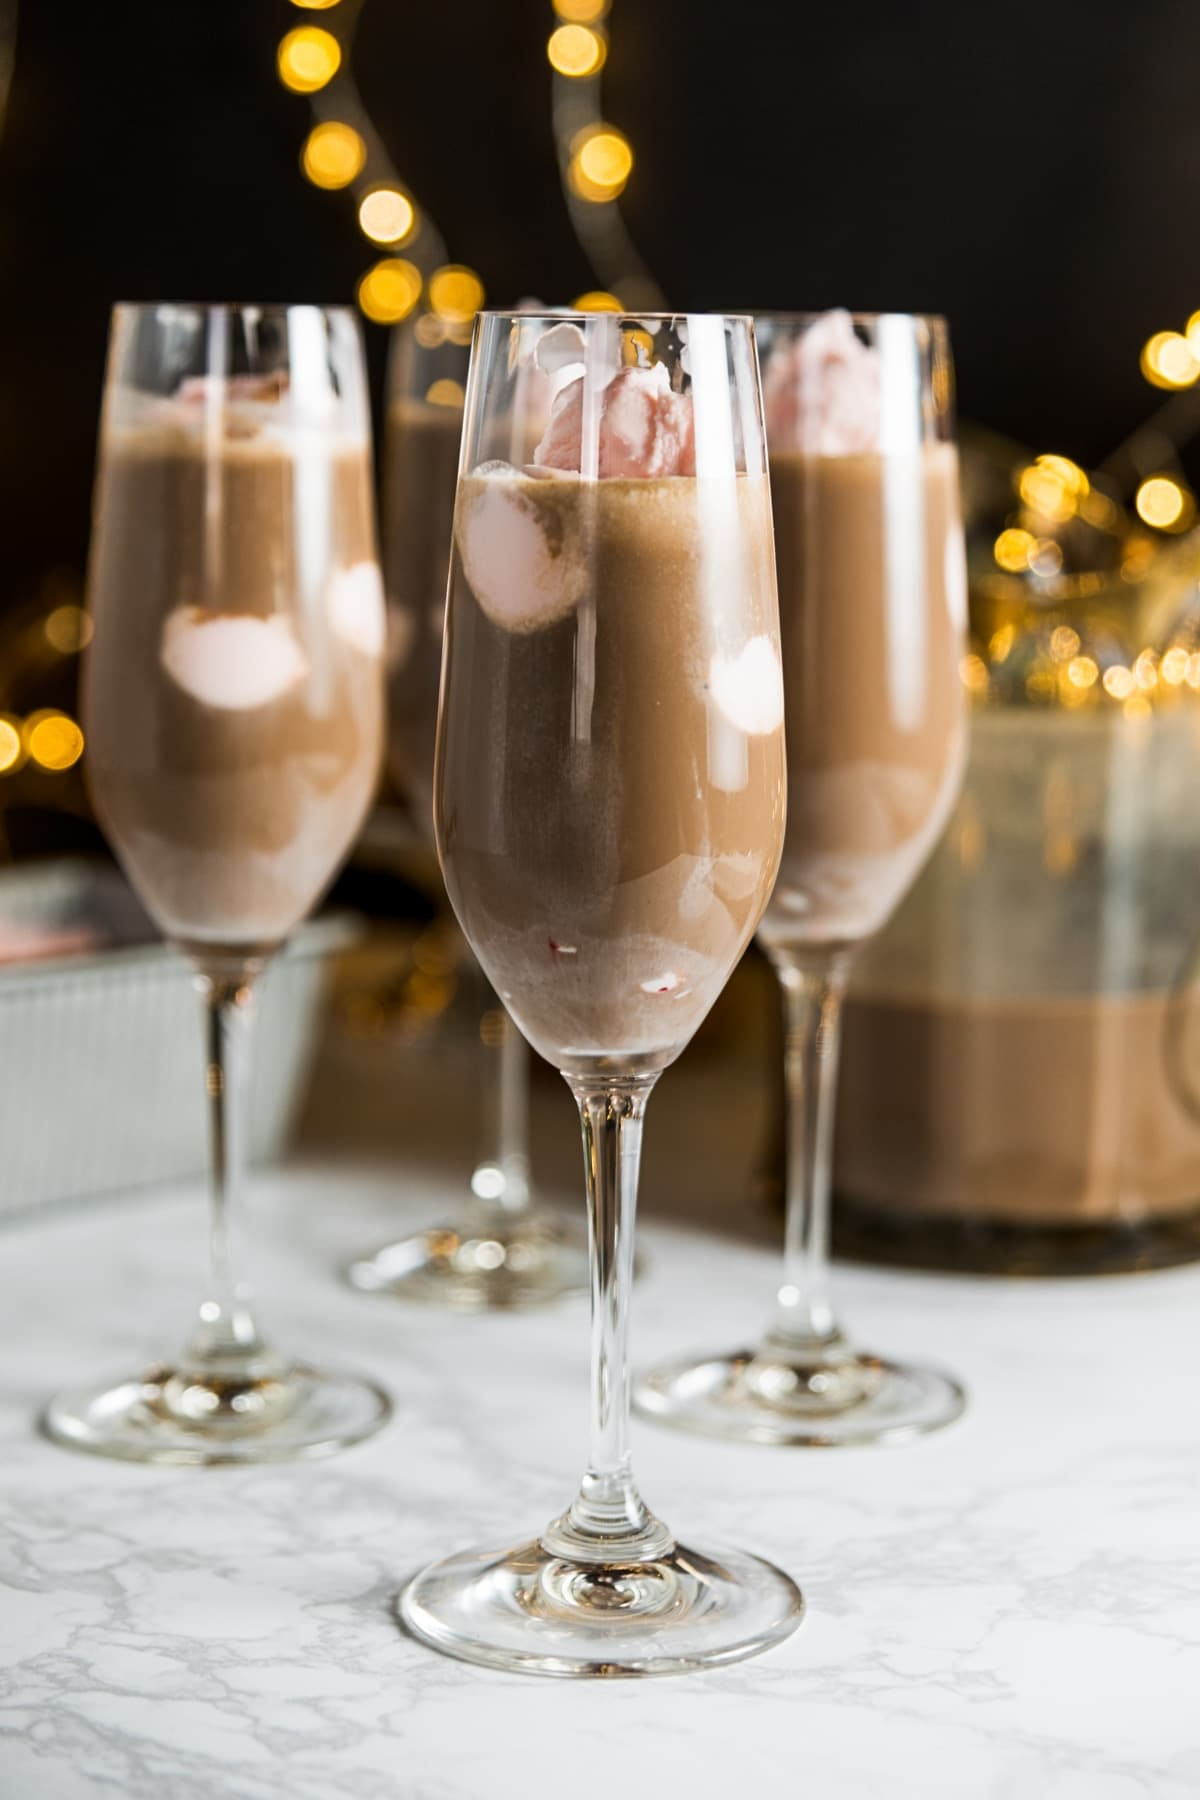 Three champagne flutes filled with pink peppermint ice cream and chocolate coffee mixture sitting on marble surface with Christmas lights on black background